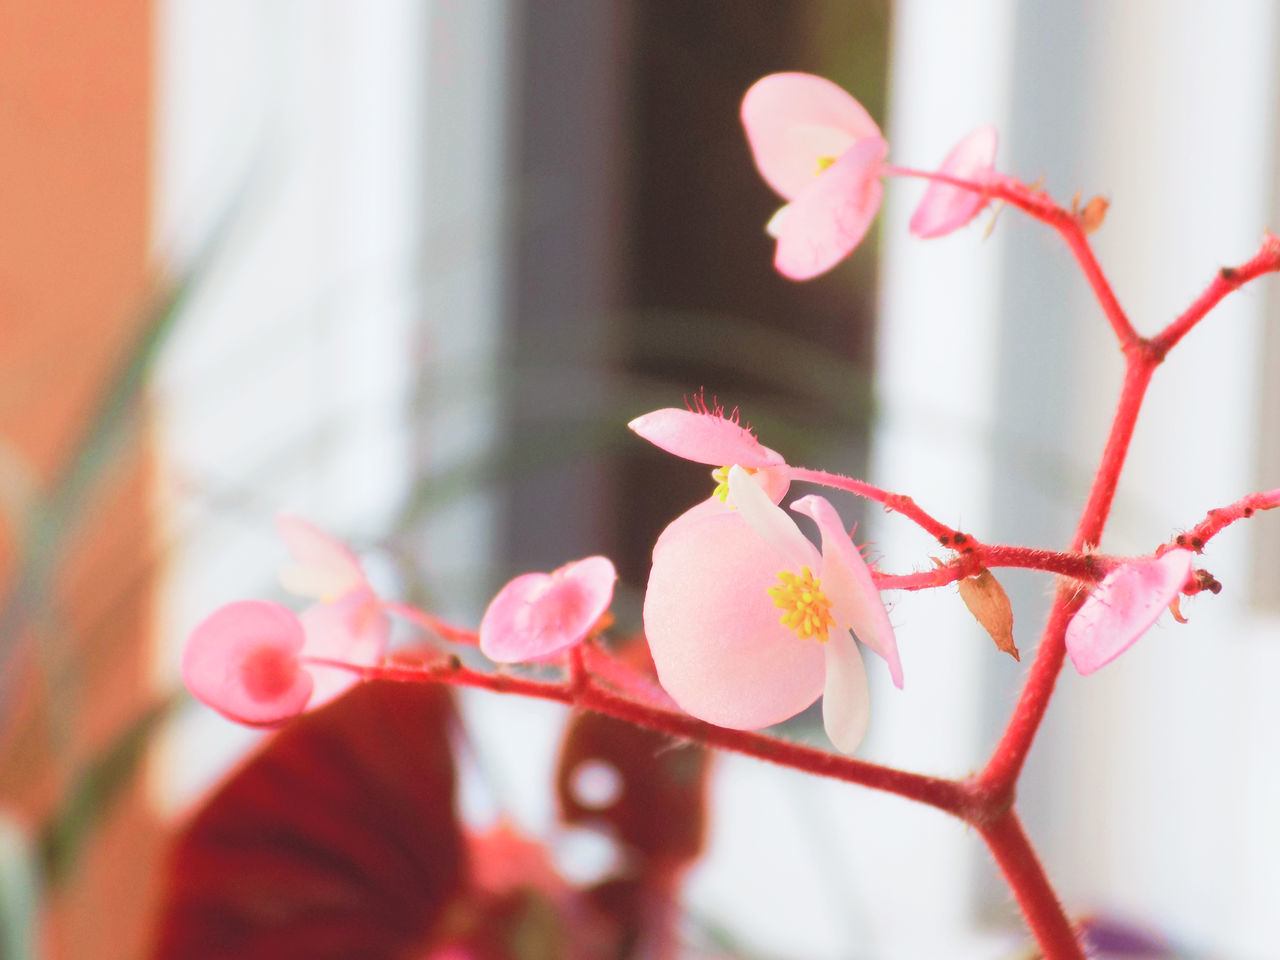 flower, growth, petal, beauty in nature, day, close-up, fragility, nature, pink color, freshness, no people, outdoors, tree, flower head, branch, blooming